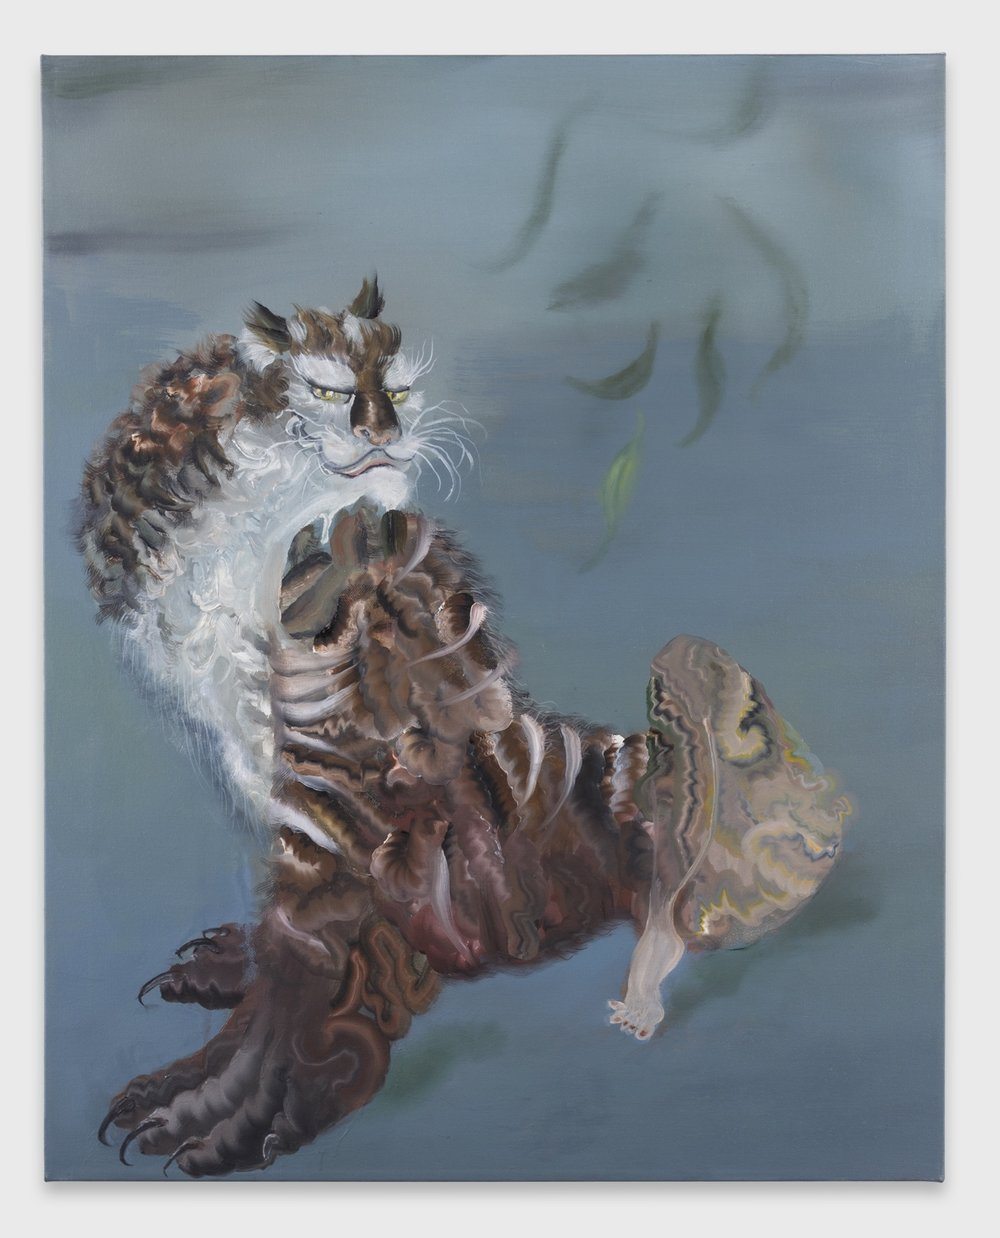 Autumn Ramsey, Cat with Sexy Leg, 2016, oil on canvas, 30 x 24 inches (76.2 x 60.9 cm), #AR-2016.007